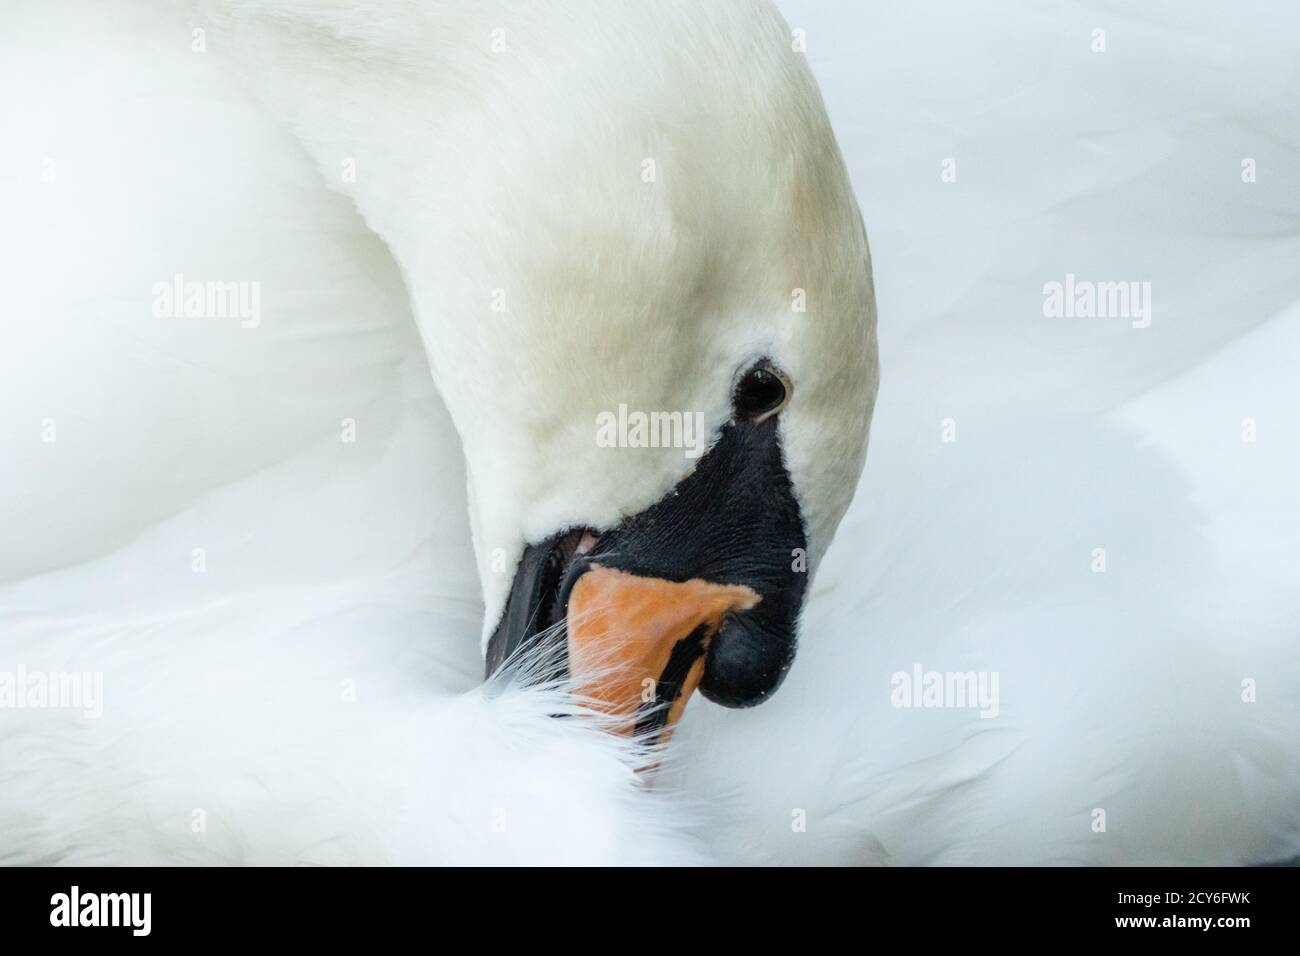 Mute swan preening her feathers. Symbol of beauty, pride, purity. Beautiful swan. England UK Stock Photo